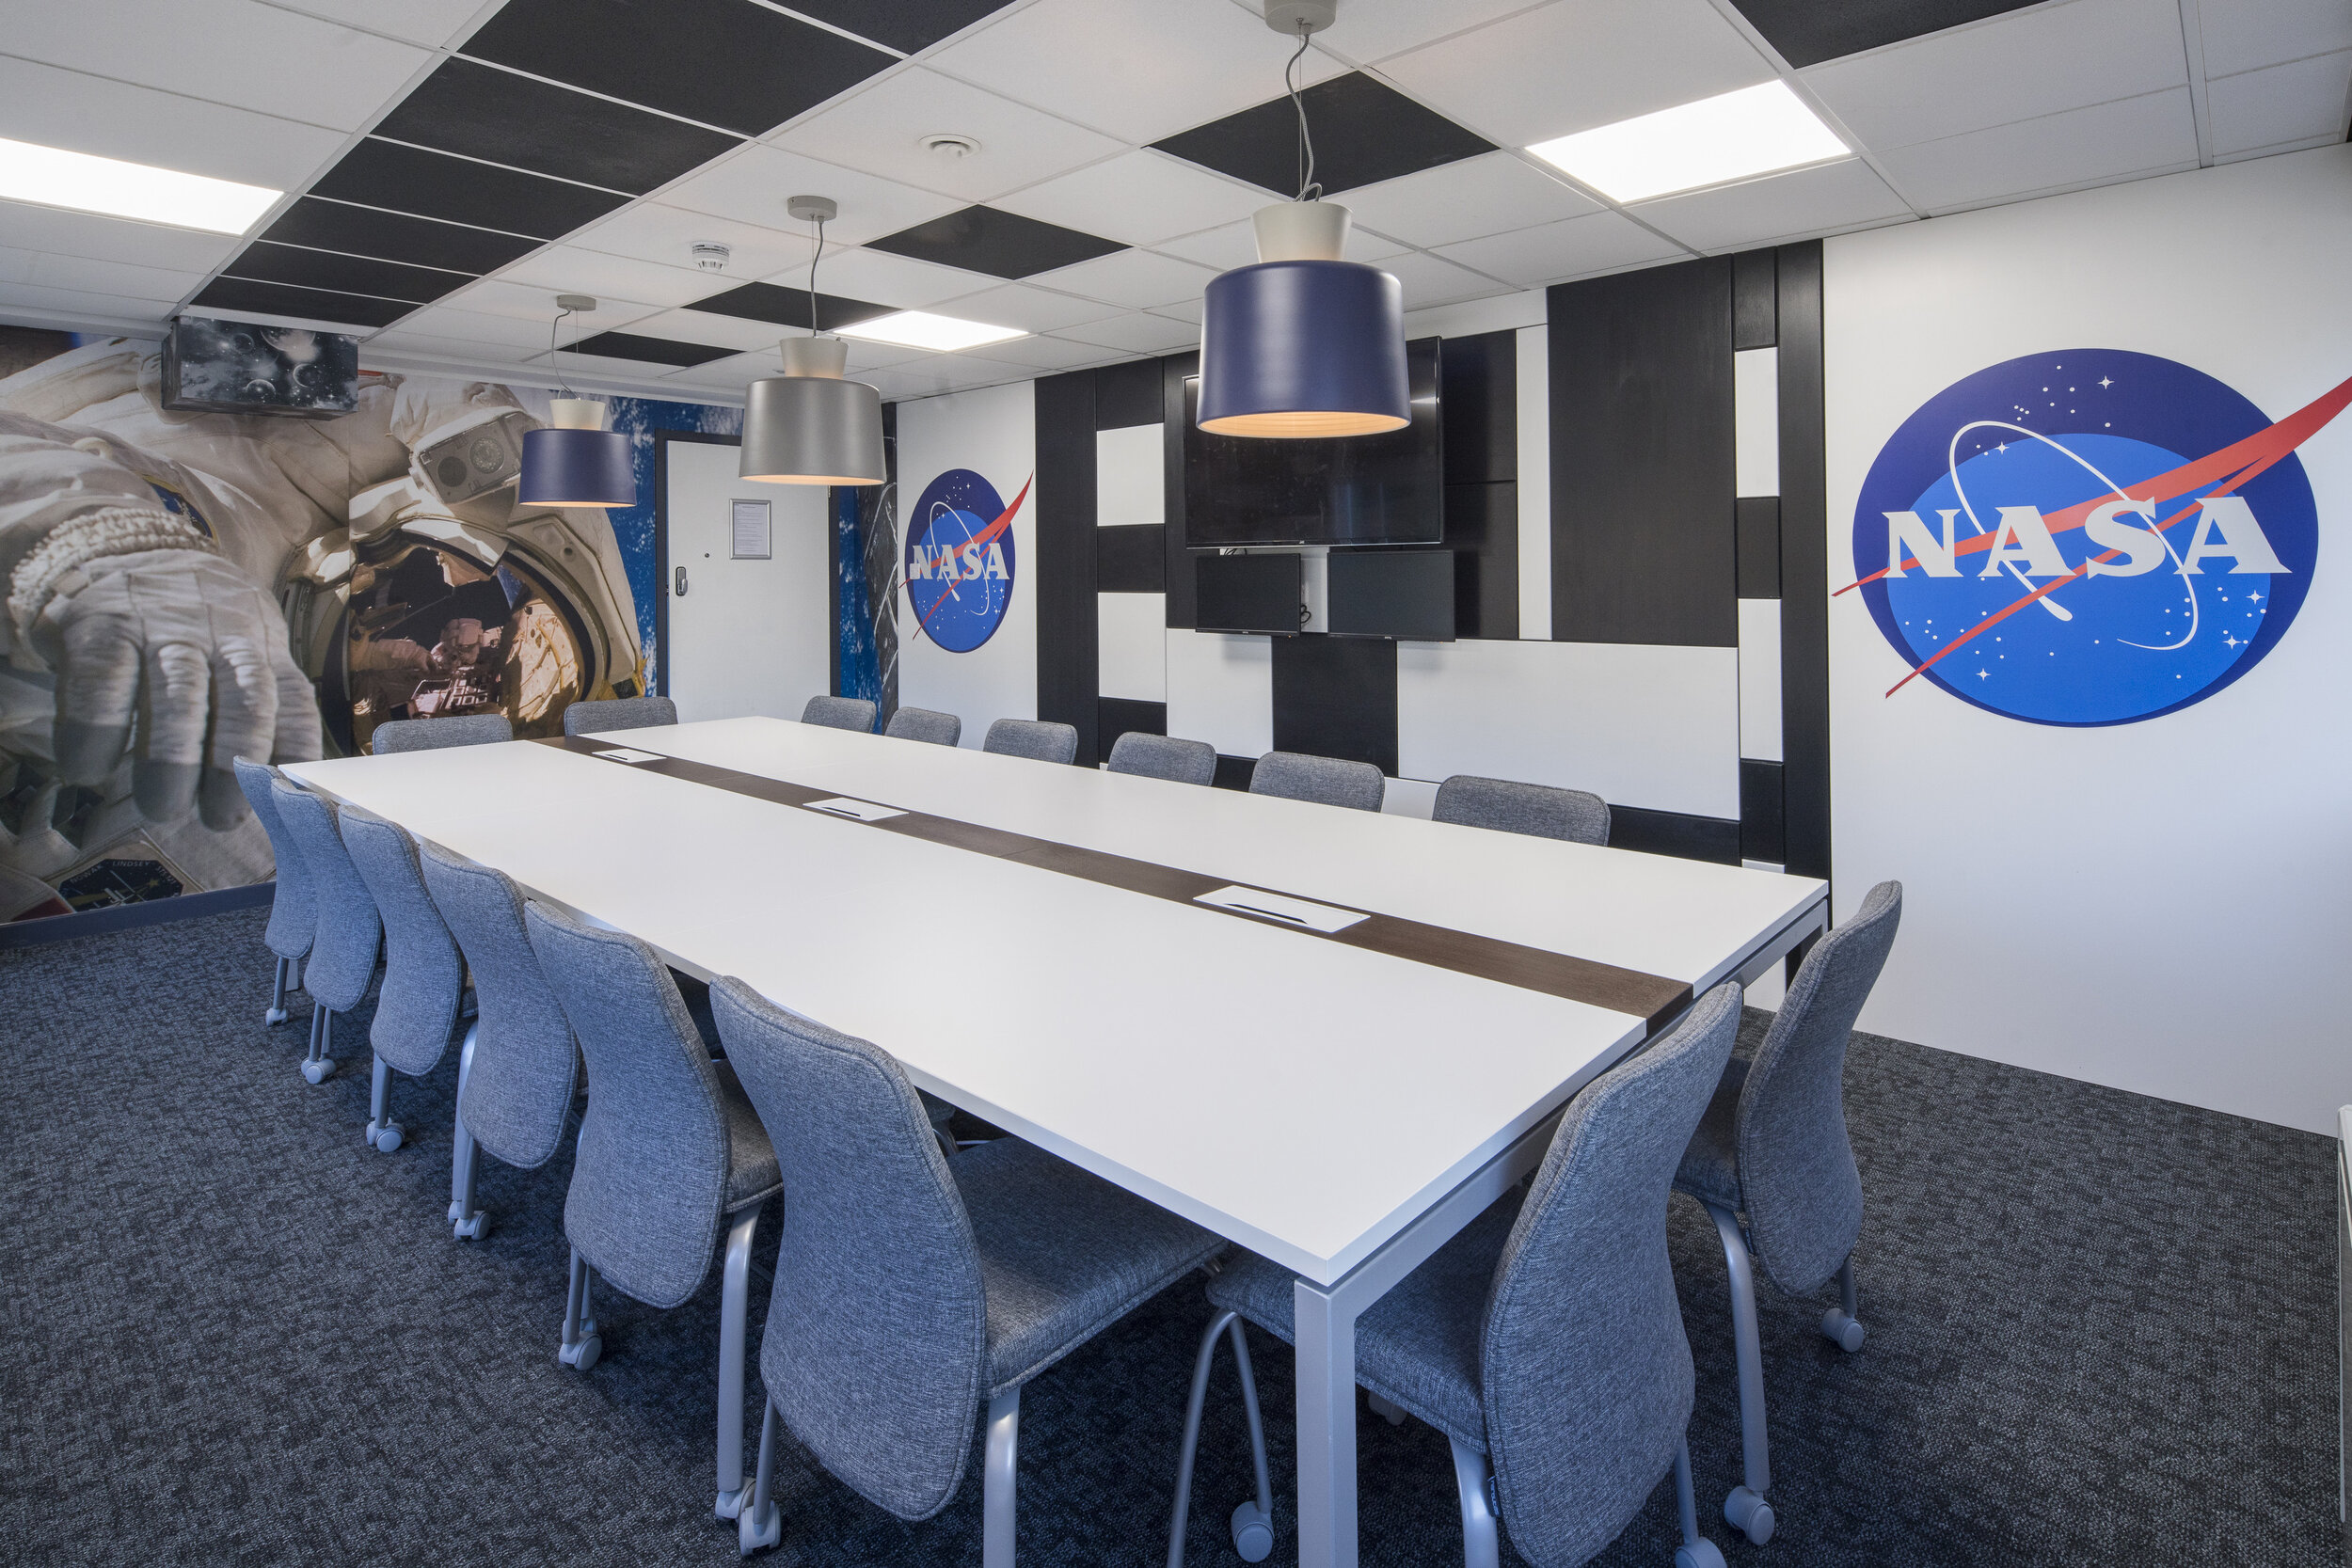 16 Person Meeting Room - NASA.jpg